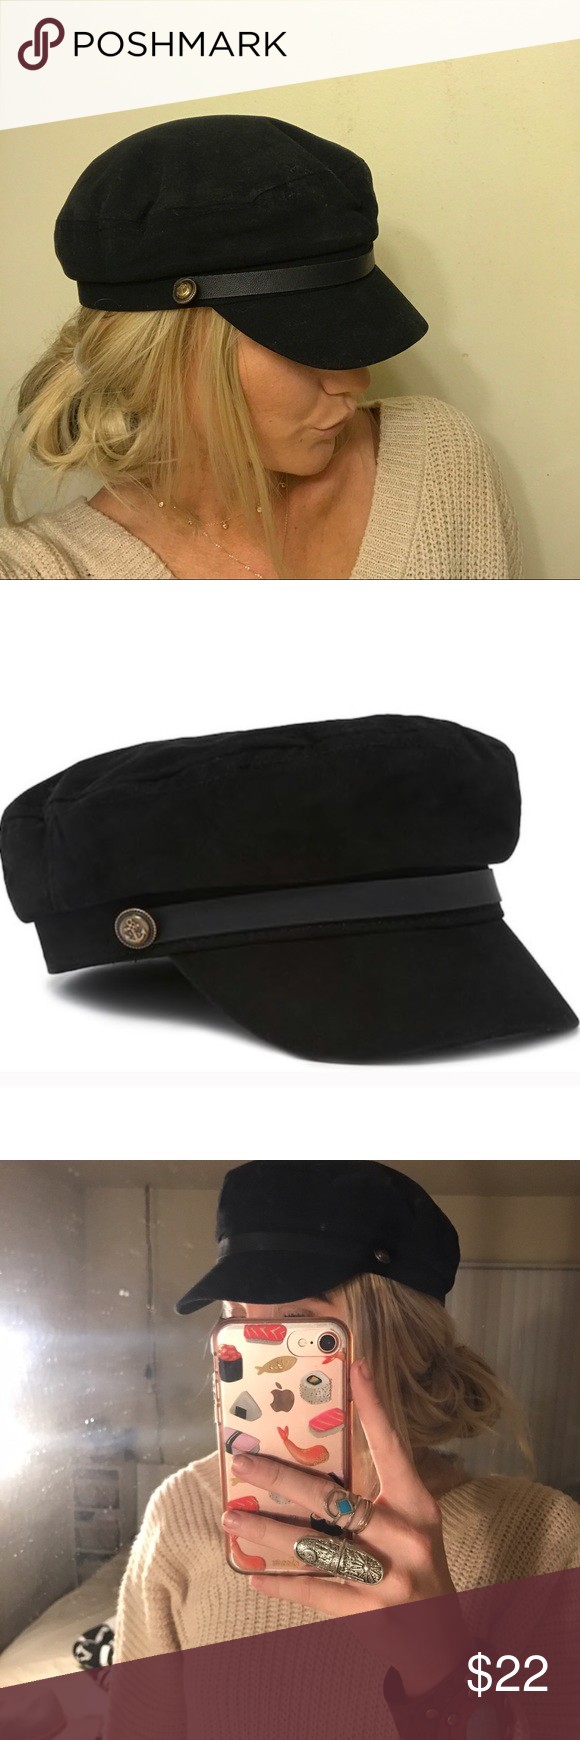 Brixton-Like Fiddler Captain Cap Super cute and on trendy fisherman ... 7a0db4a72f67